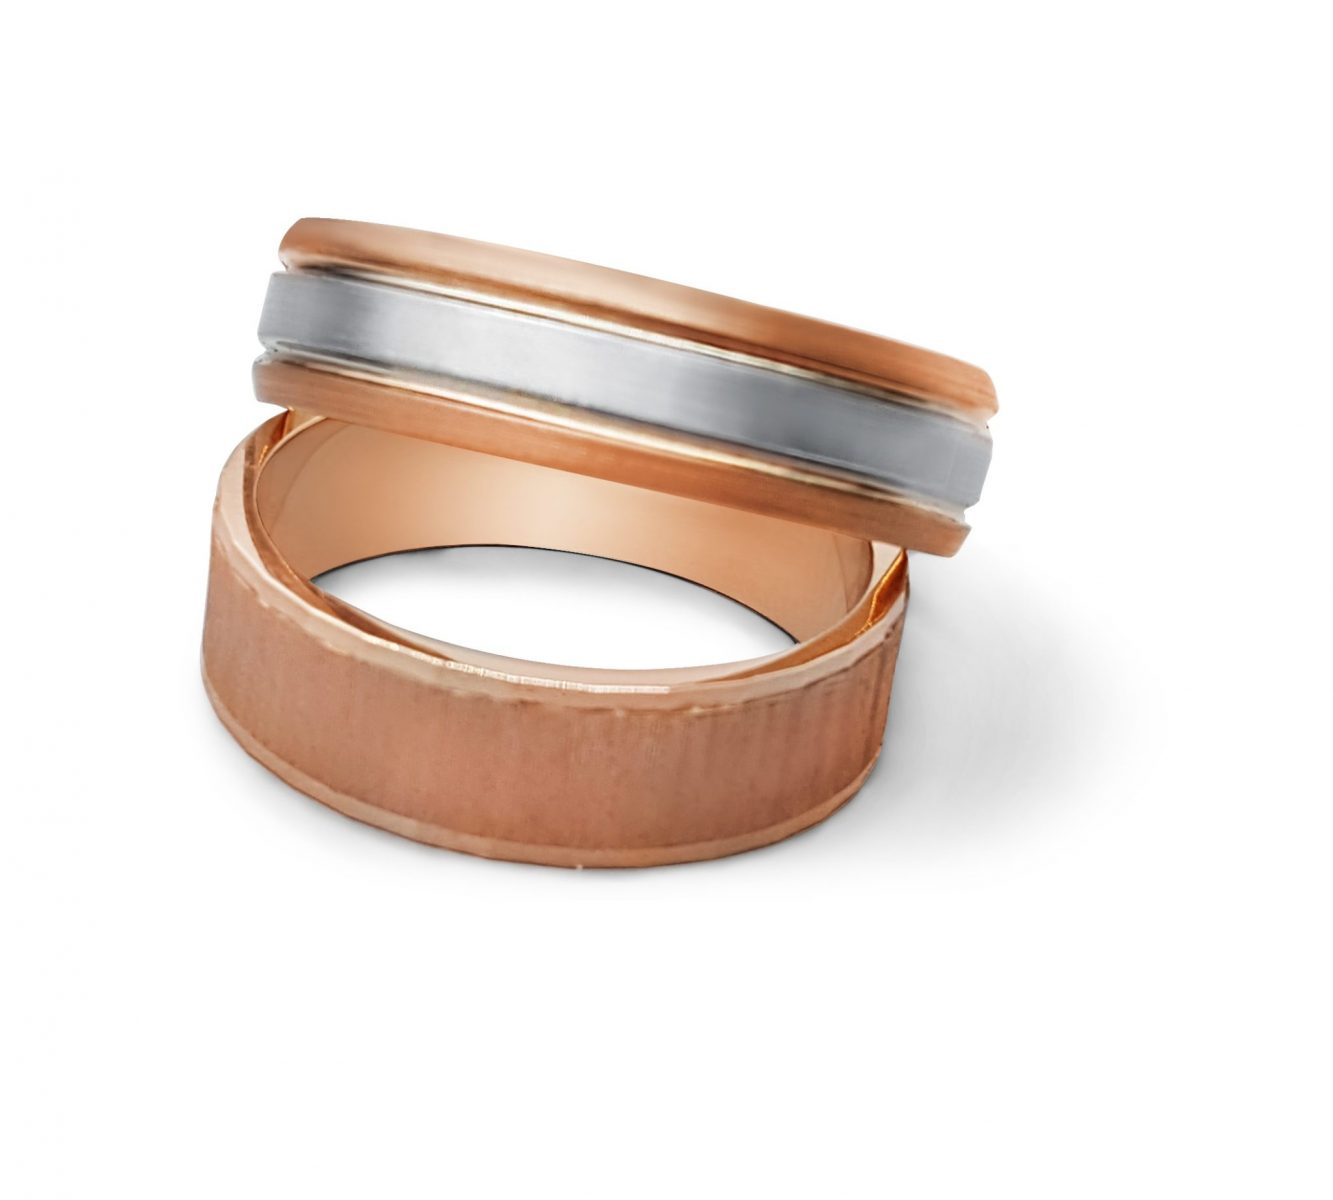 Two rose gold men's wedding bands. Great for an LGBT couple